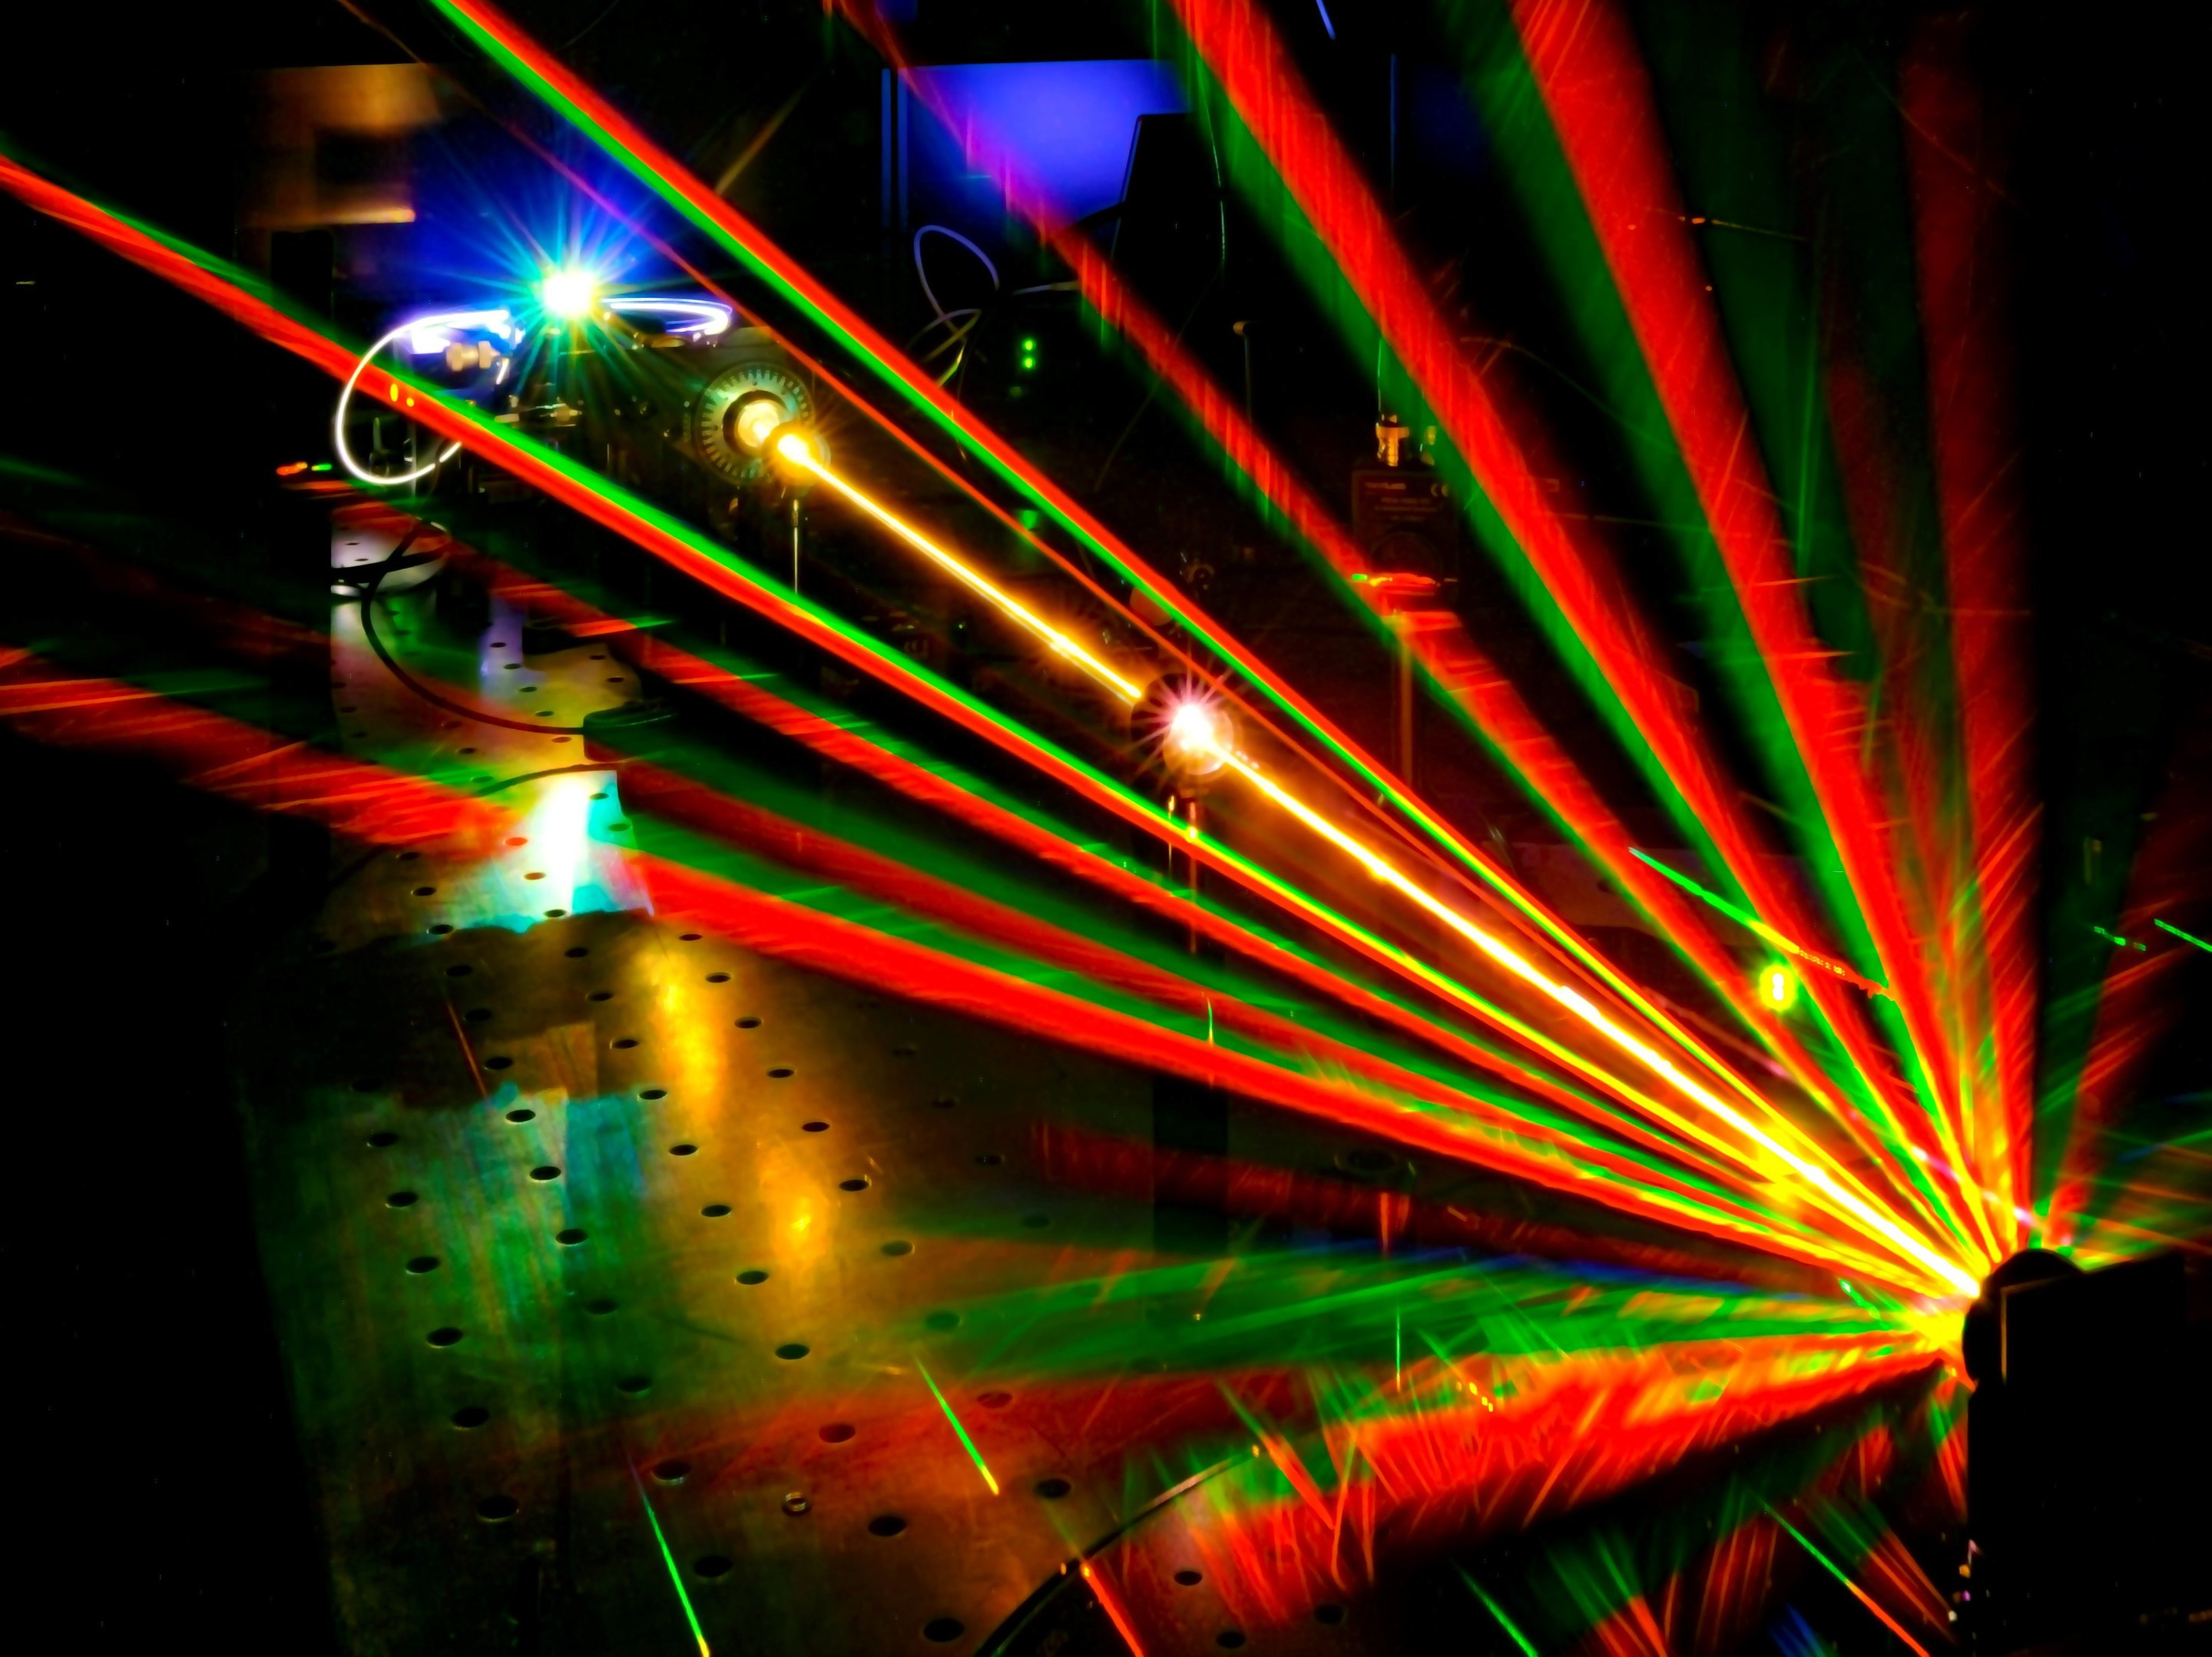 Twisting Laser Light Offers The Chance To Probe The Nano Scale Photo